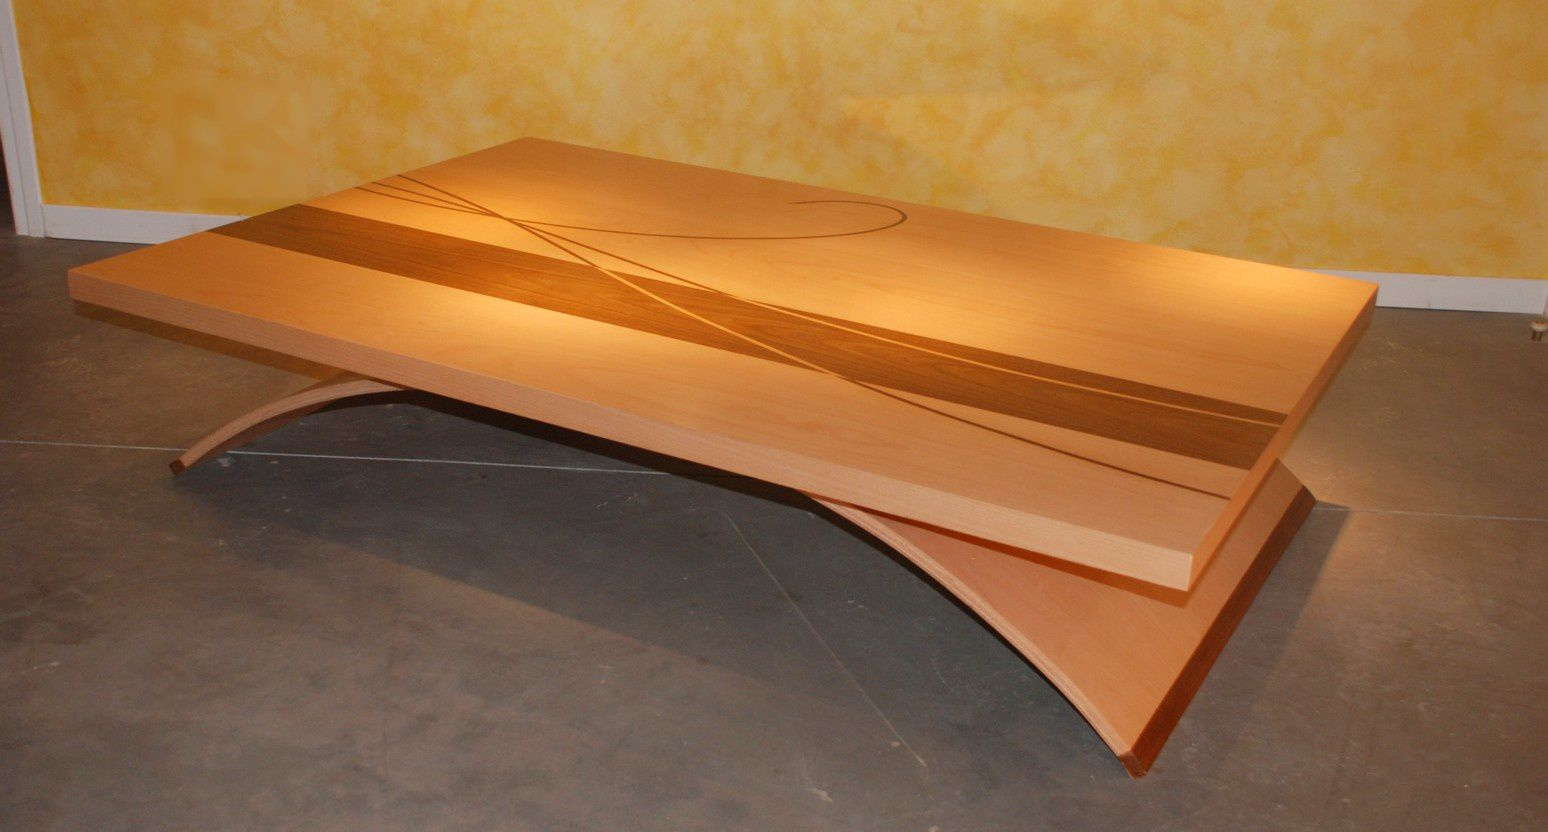 Table basse design arc atelier pourquoi pas mobilier design sur mesures - Table basse contemporaine ...